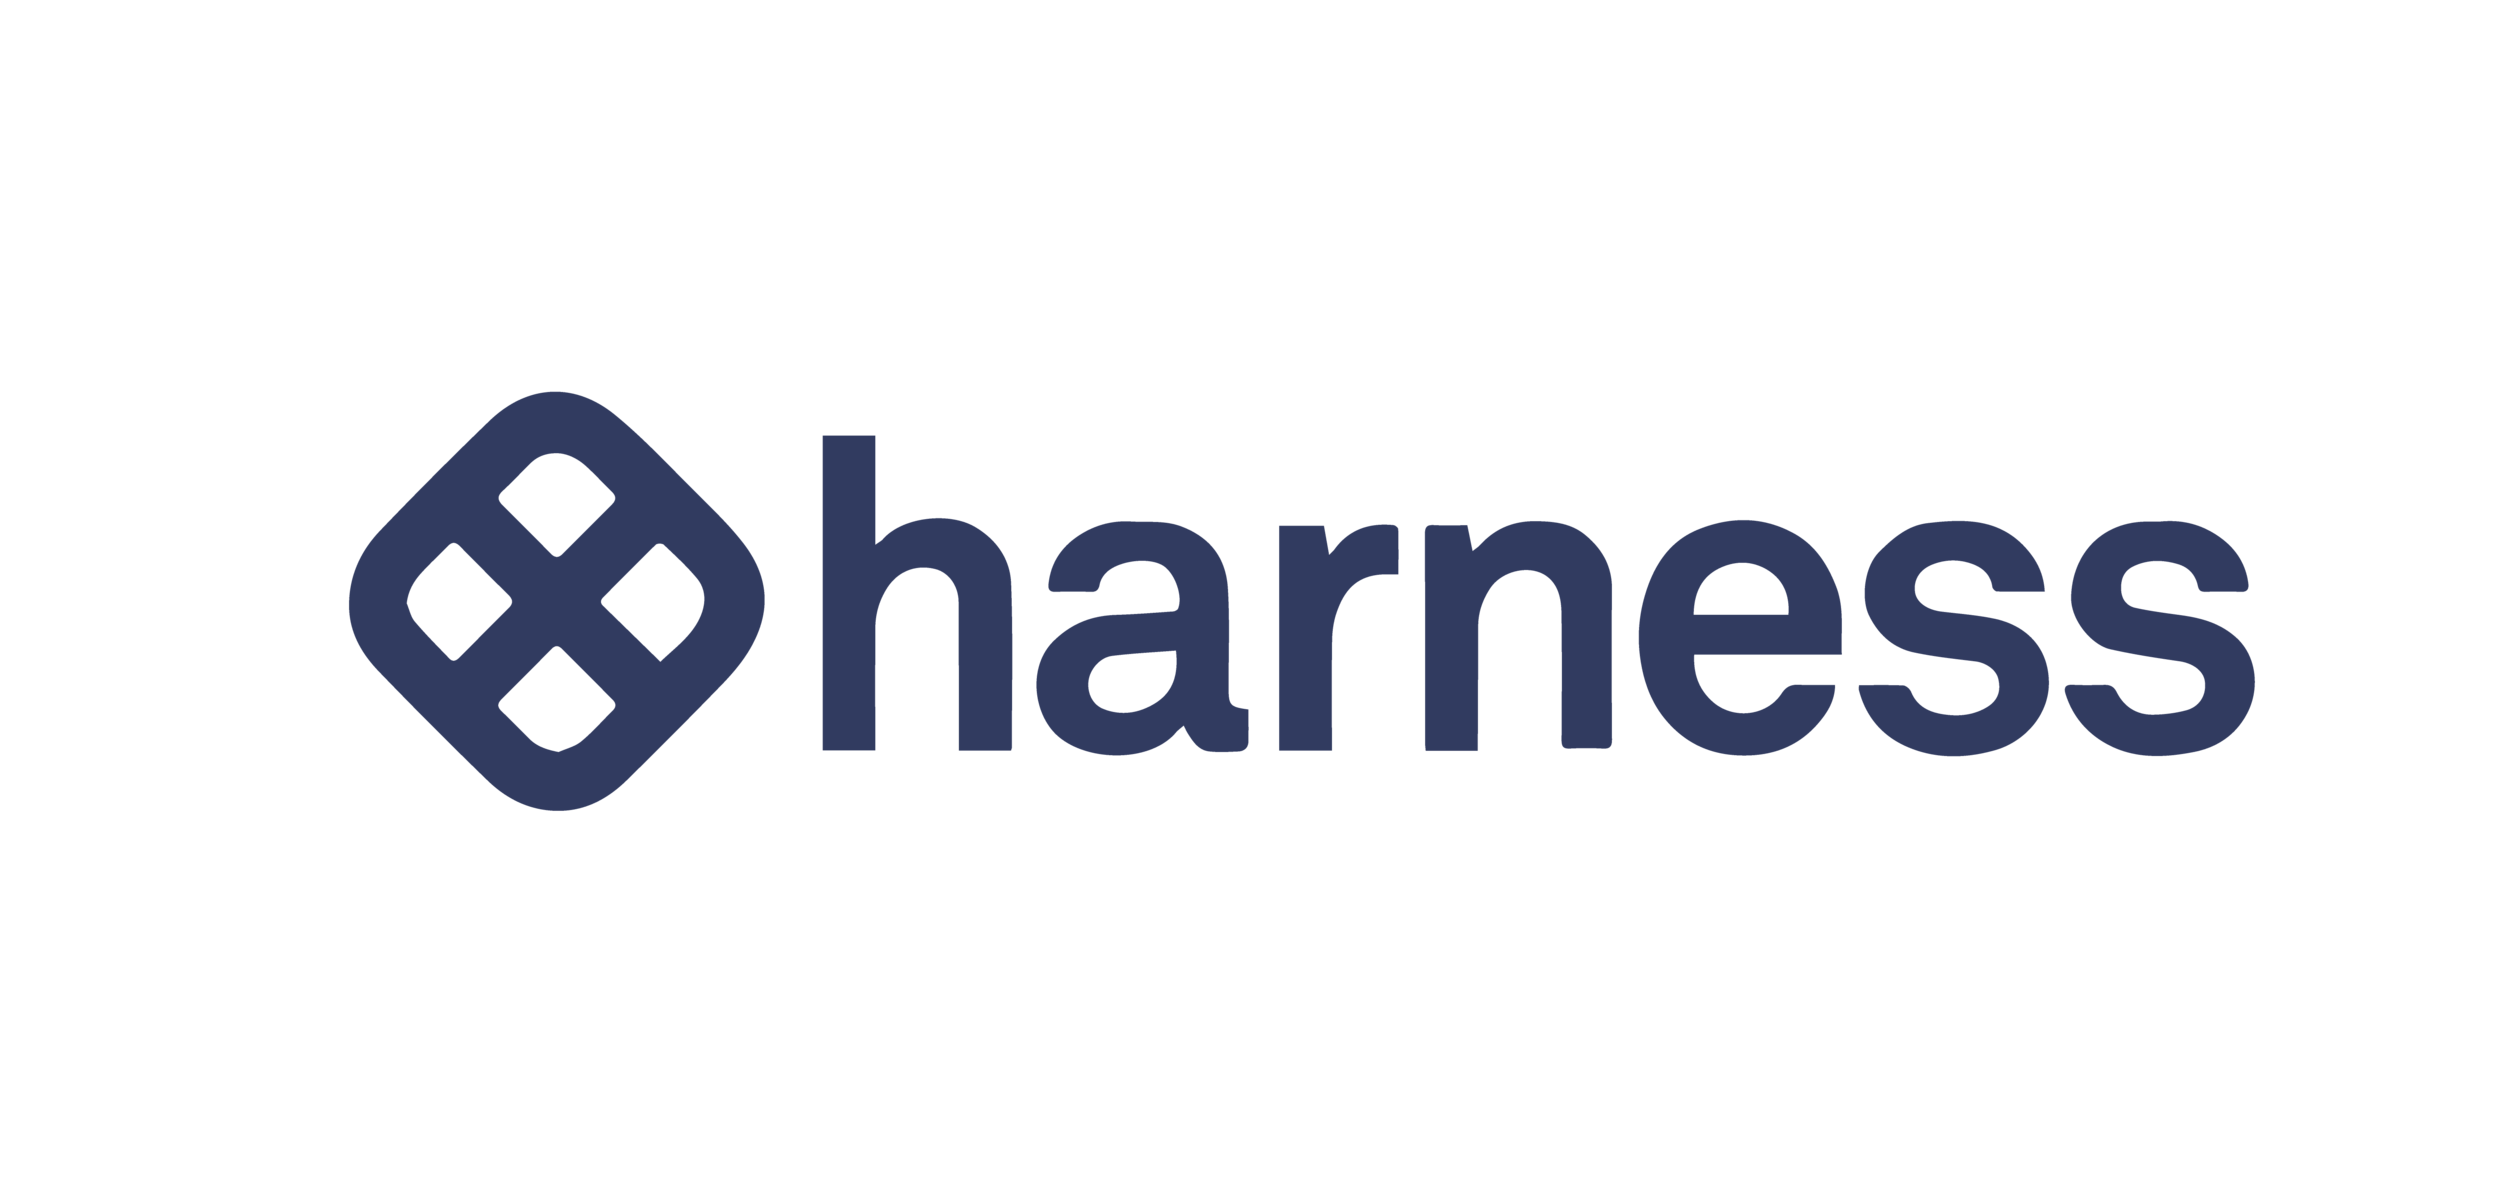 Logo_Harness.png